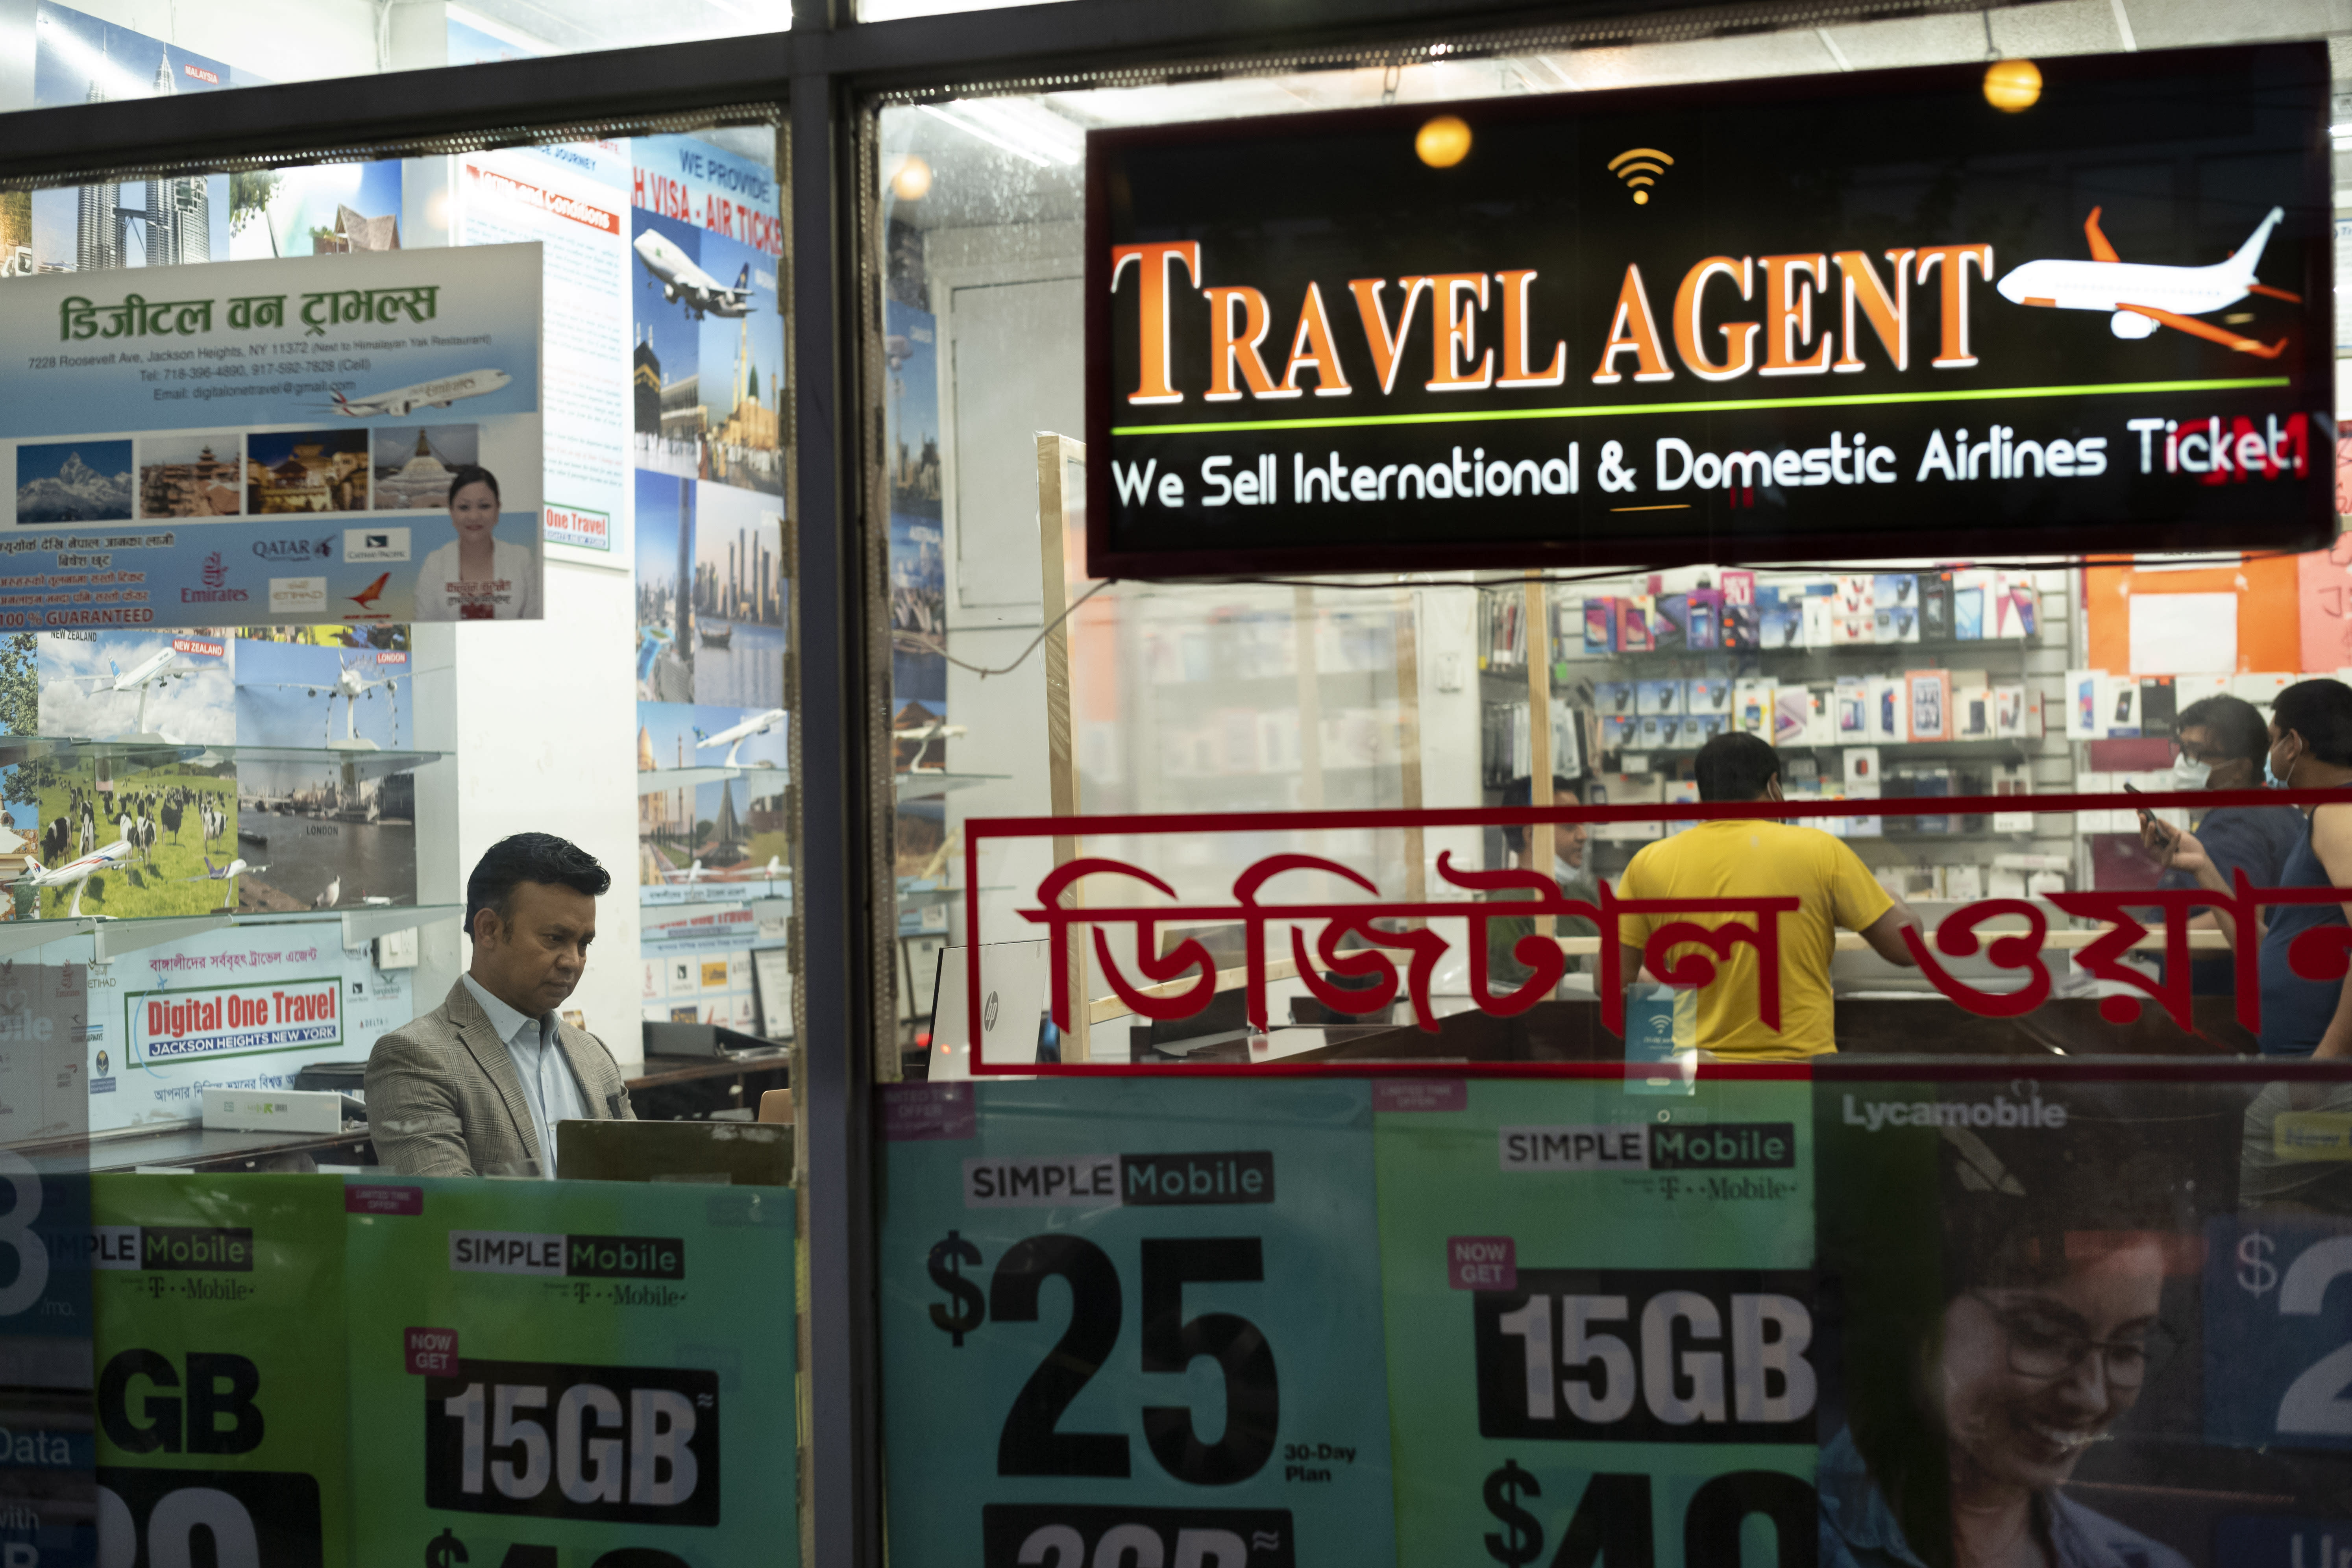 "Zakaria Masud, left, works in his Queens travel agency after it reopened during the coronavirus pandemic, June 18, 2020, in New York's Jackson Heights neighborhood. ""I think we're losing 50 percent of the revenue. But I think we can survive,"" said Masud. (AP Photo/Mark Lennihan)"